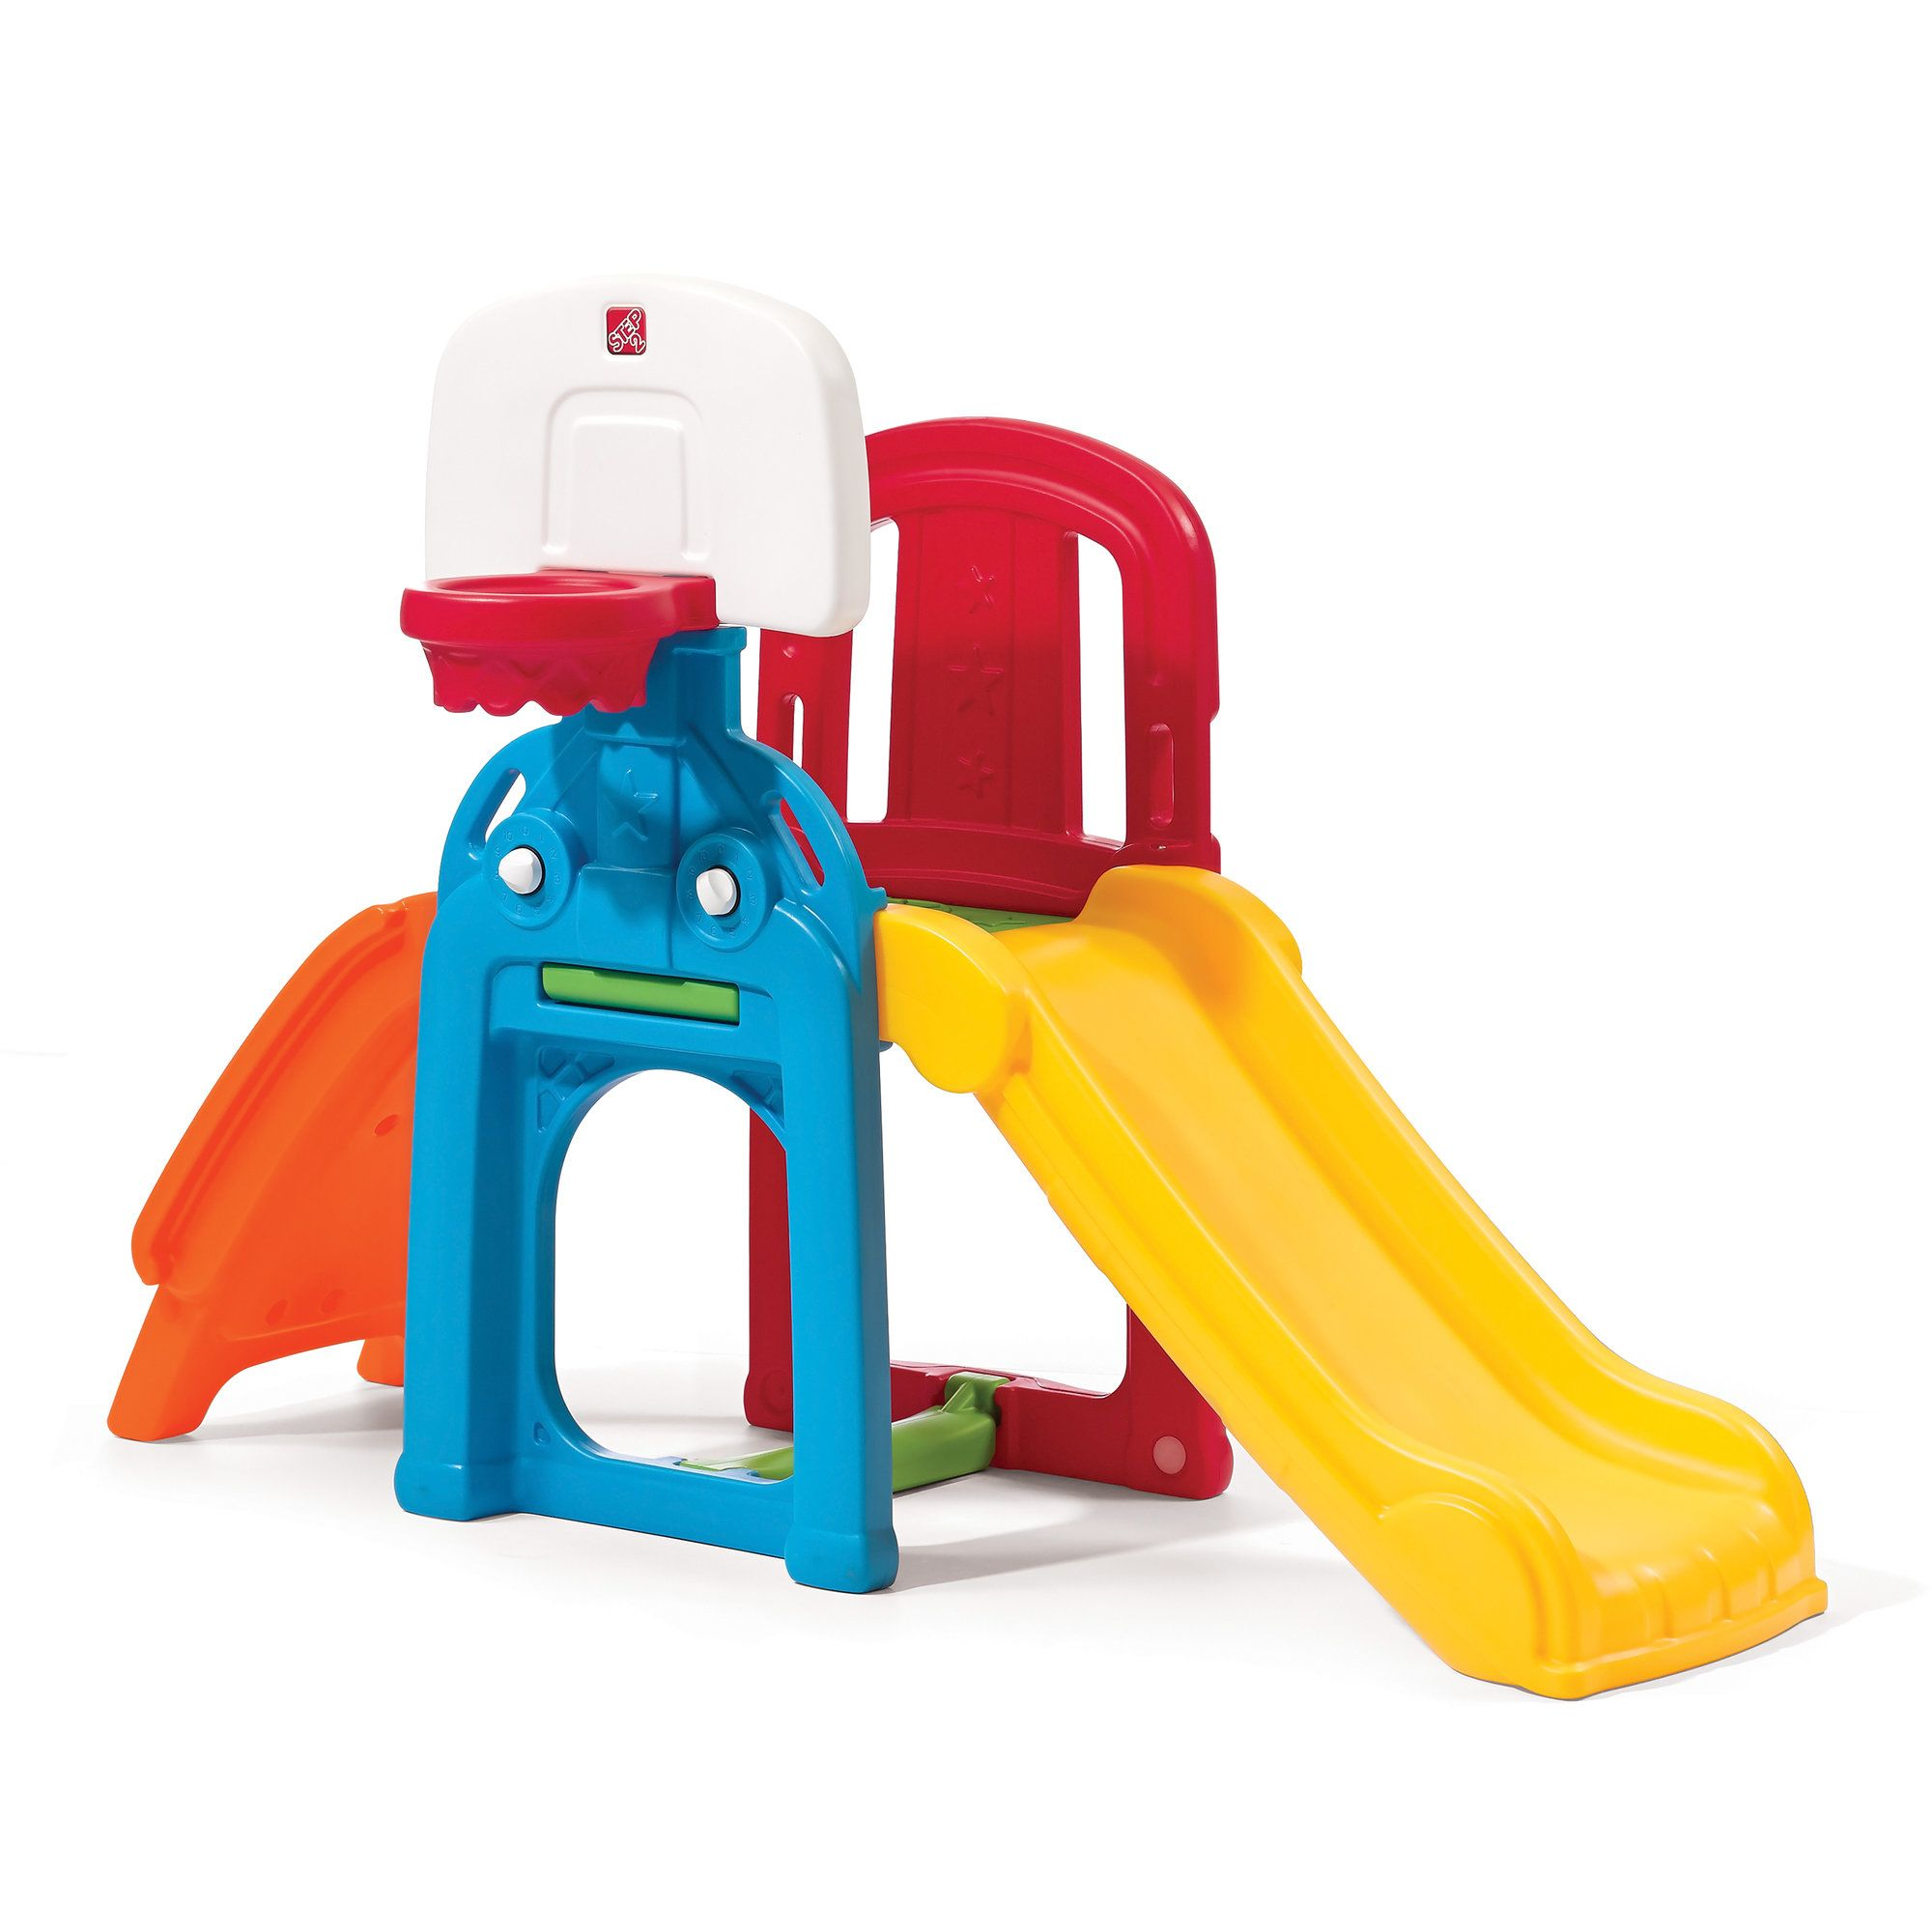 Game Time Sports Climber Outdoor games for kids, Outdoor